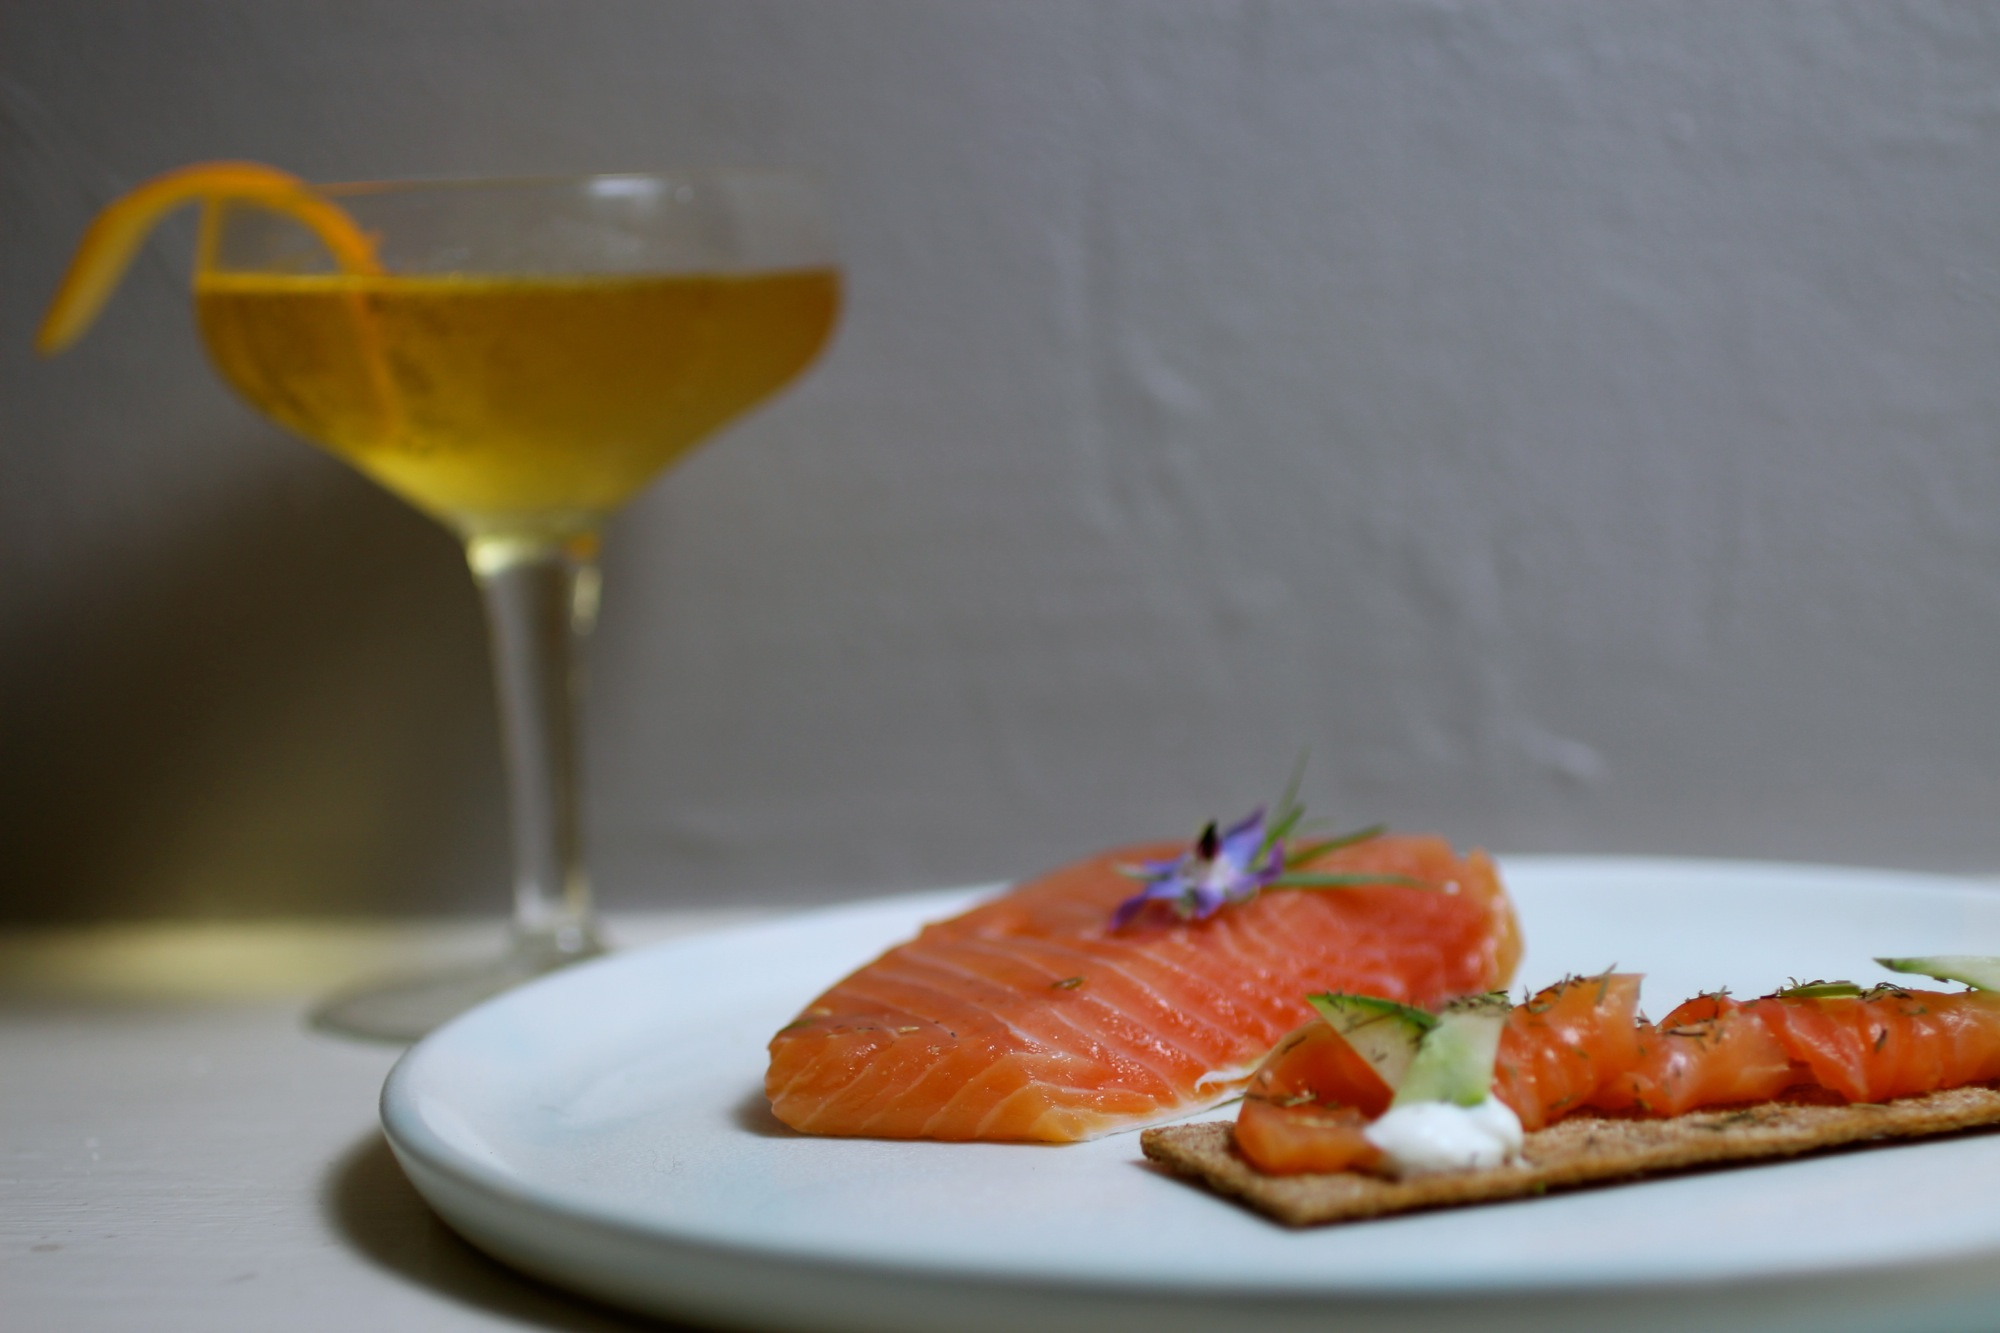 Gravlax pairs perfectly with rye crackers, cucumber, aquavit cocktails, and borage flower garnish.